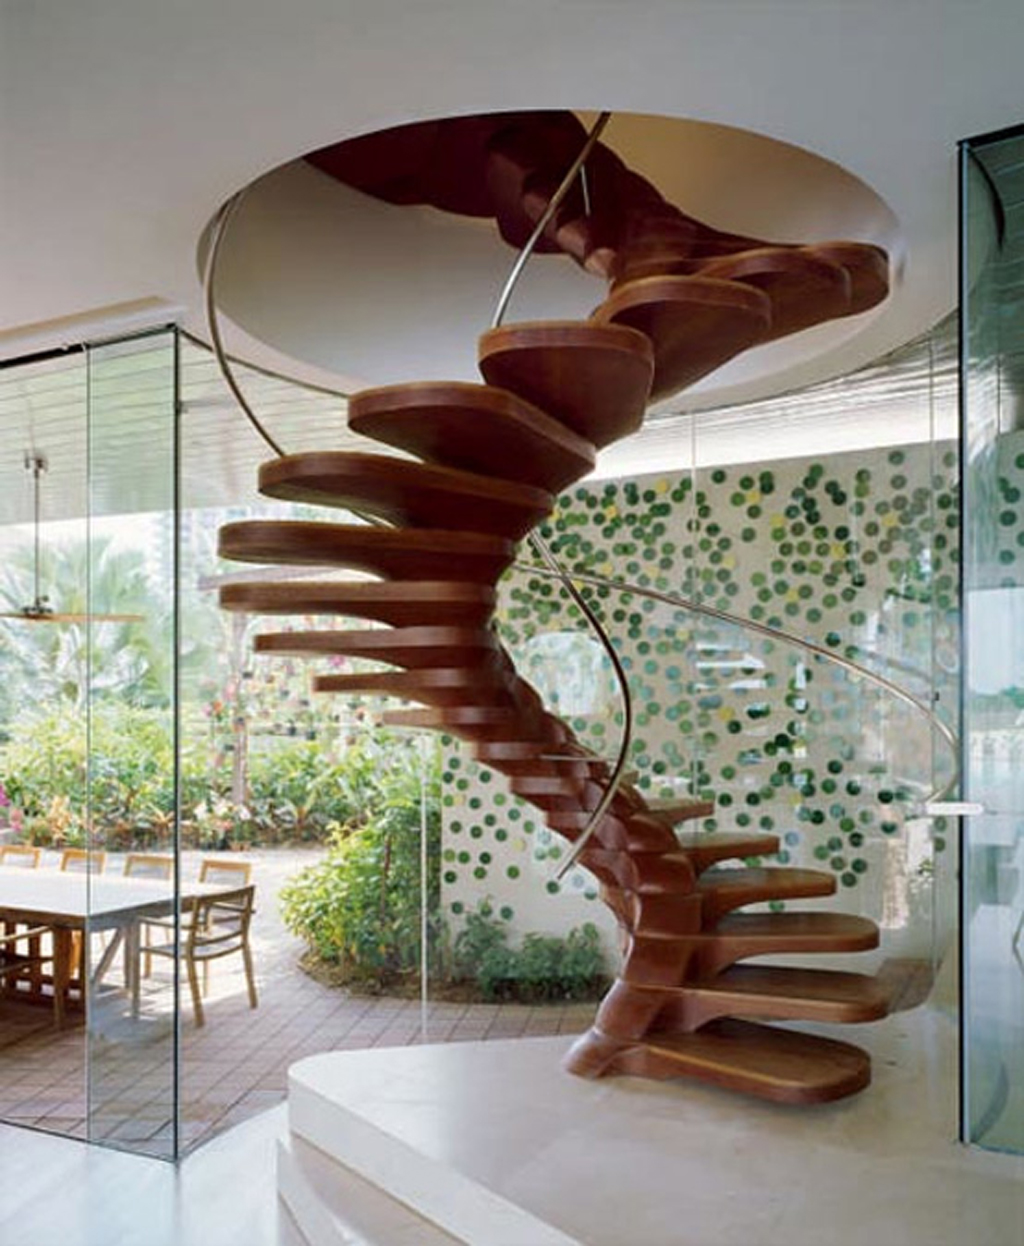 Modern wooden spiral staircase layouts - Modern interior design with spiral stairs contemporary spiral staircase design ...